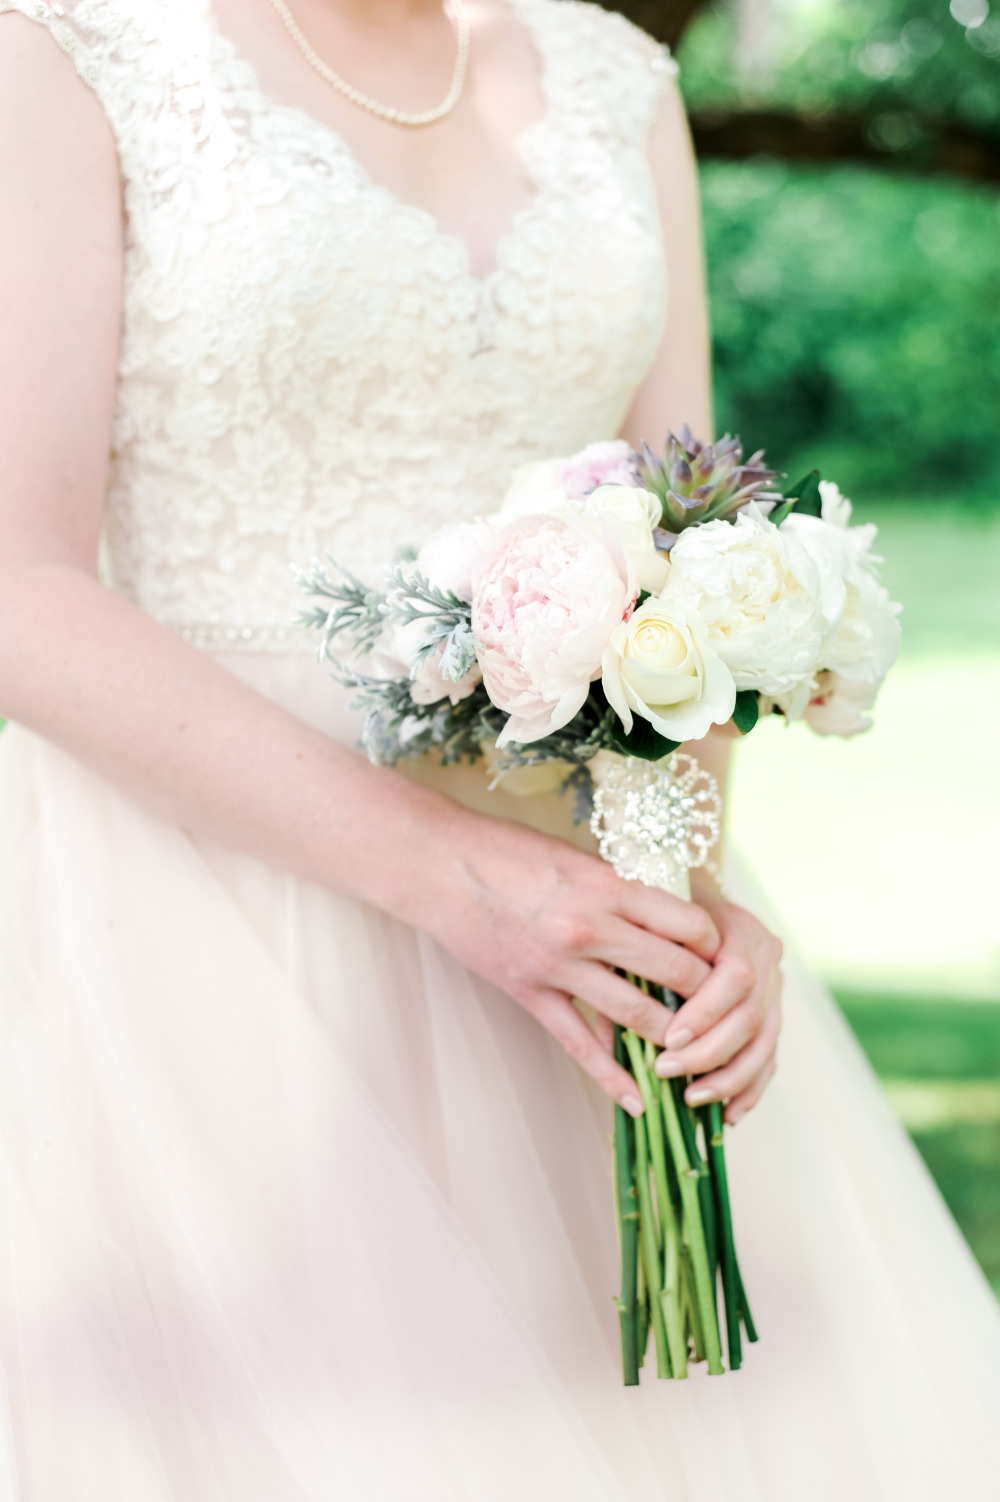 long stem wedding bouquet with peonies